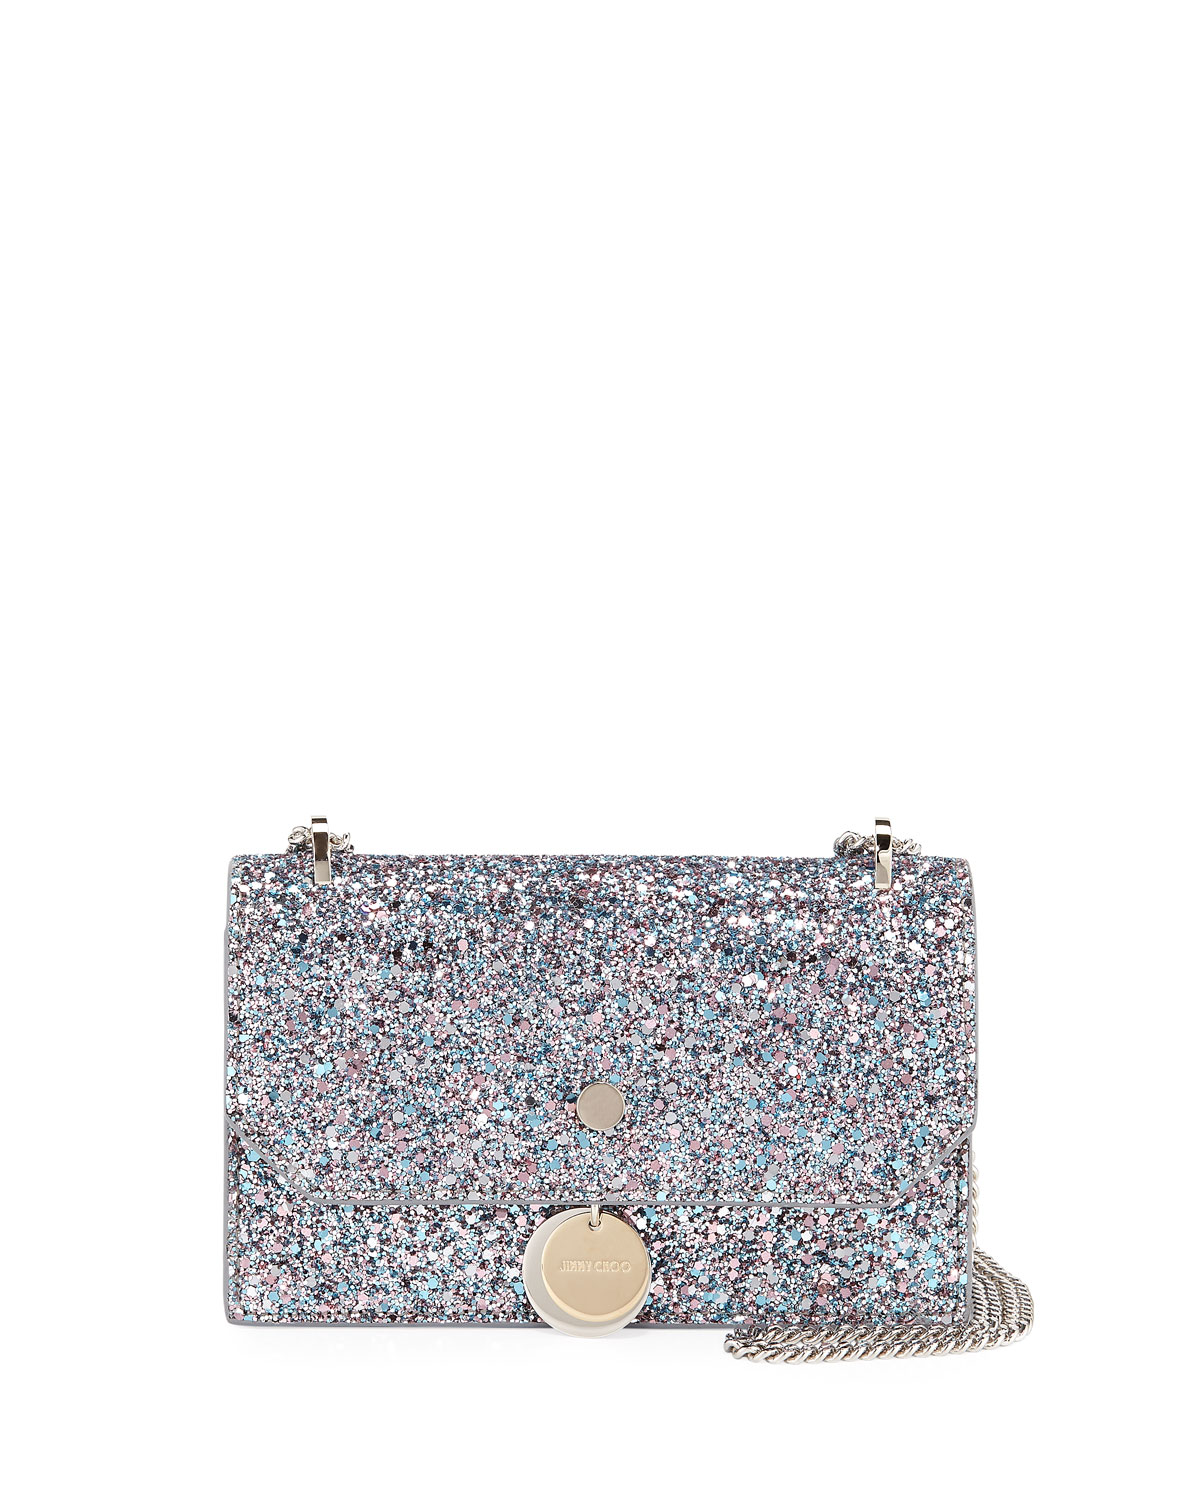 2c5debbde86d Jimmy Choo Finley Coarse Glitter Crossbody Bag